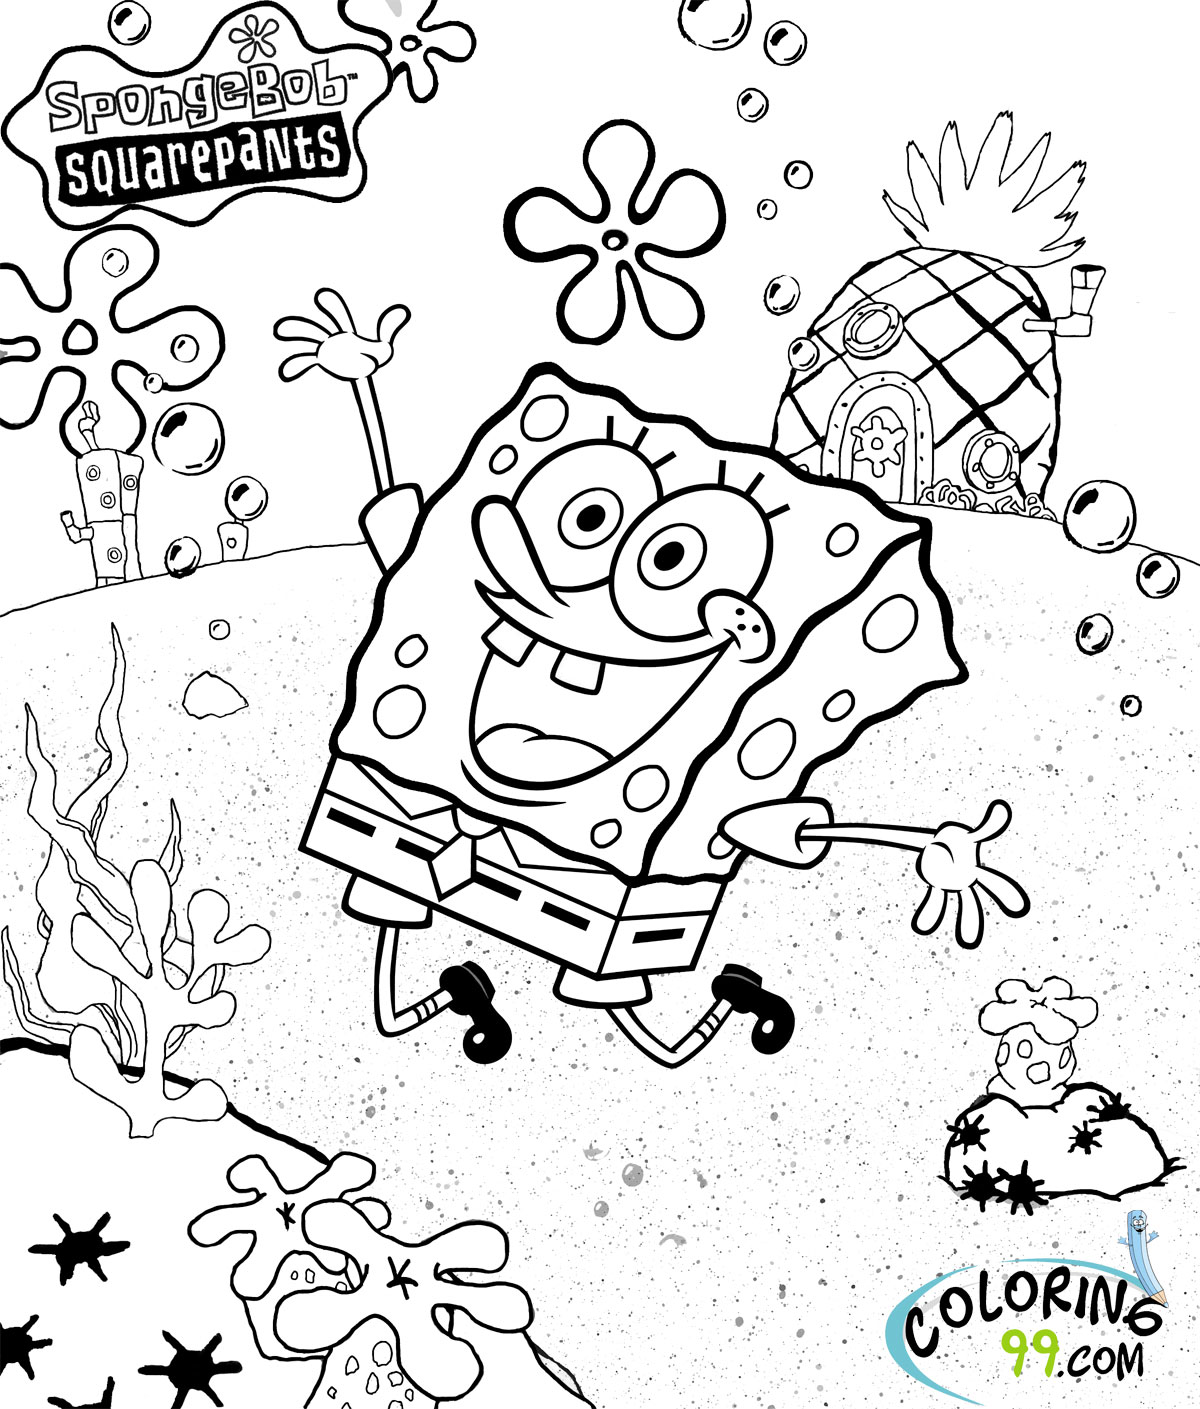 sponge squarepants coloring pages - photo#11